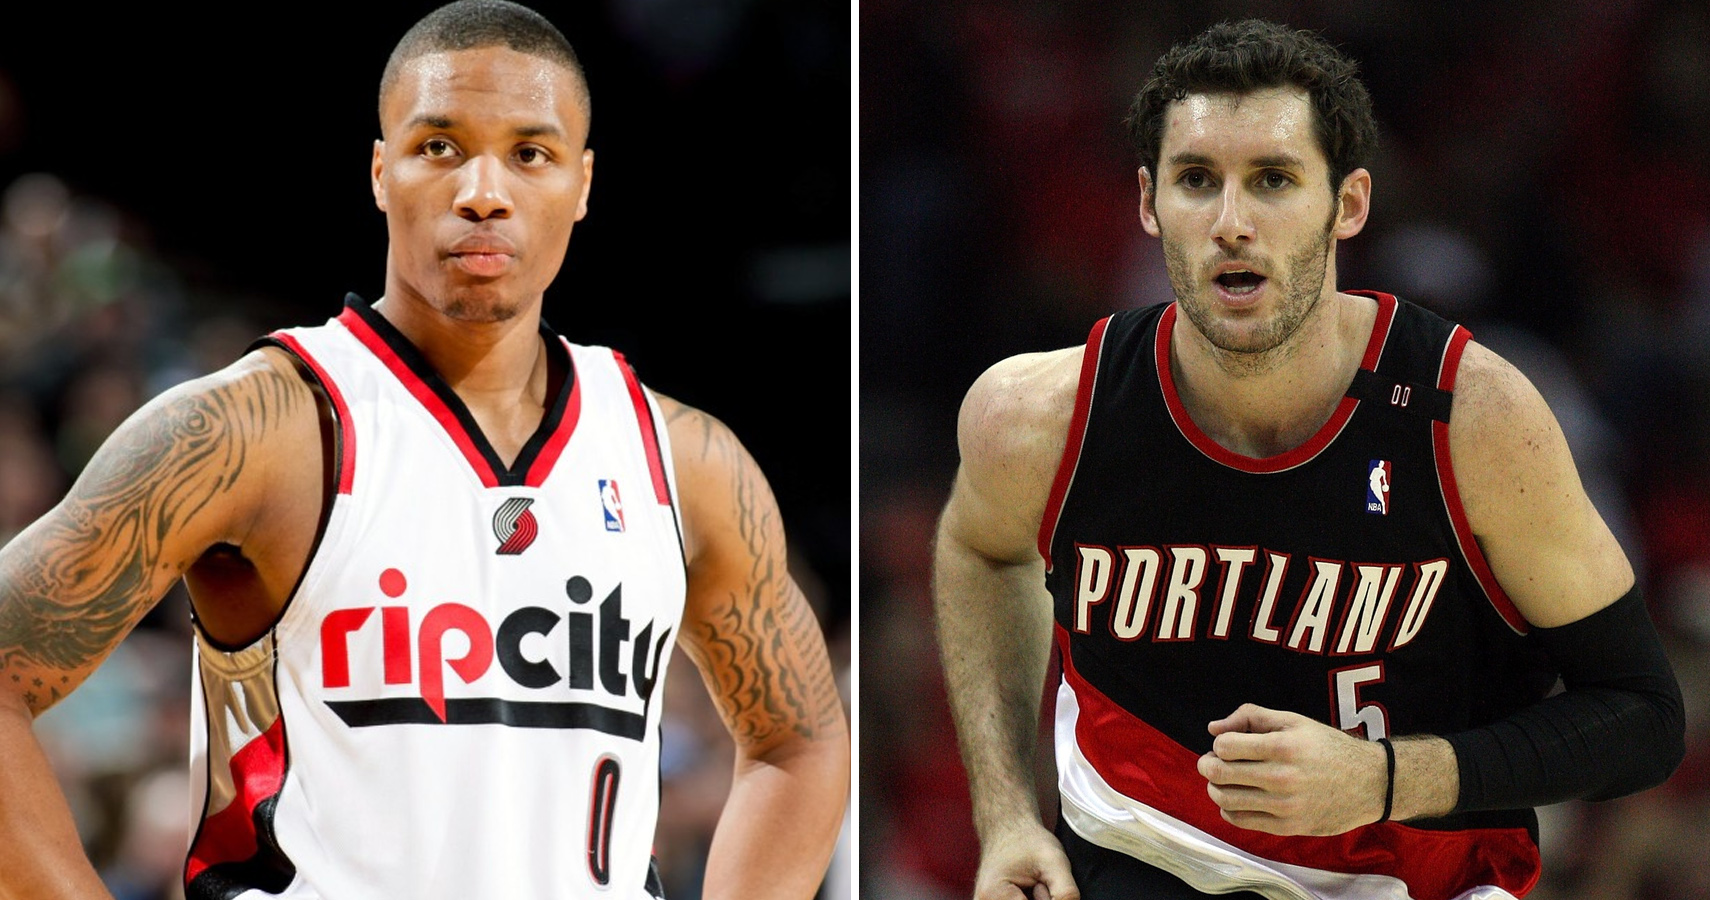 The 8 Best And 7 Worst Portland Trail Blazers Since 2000